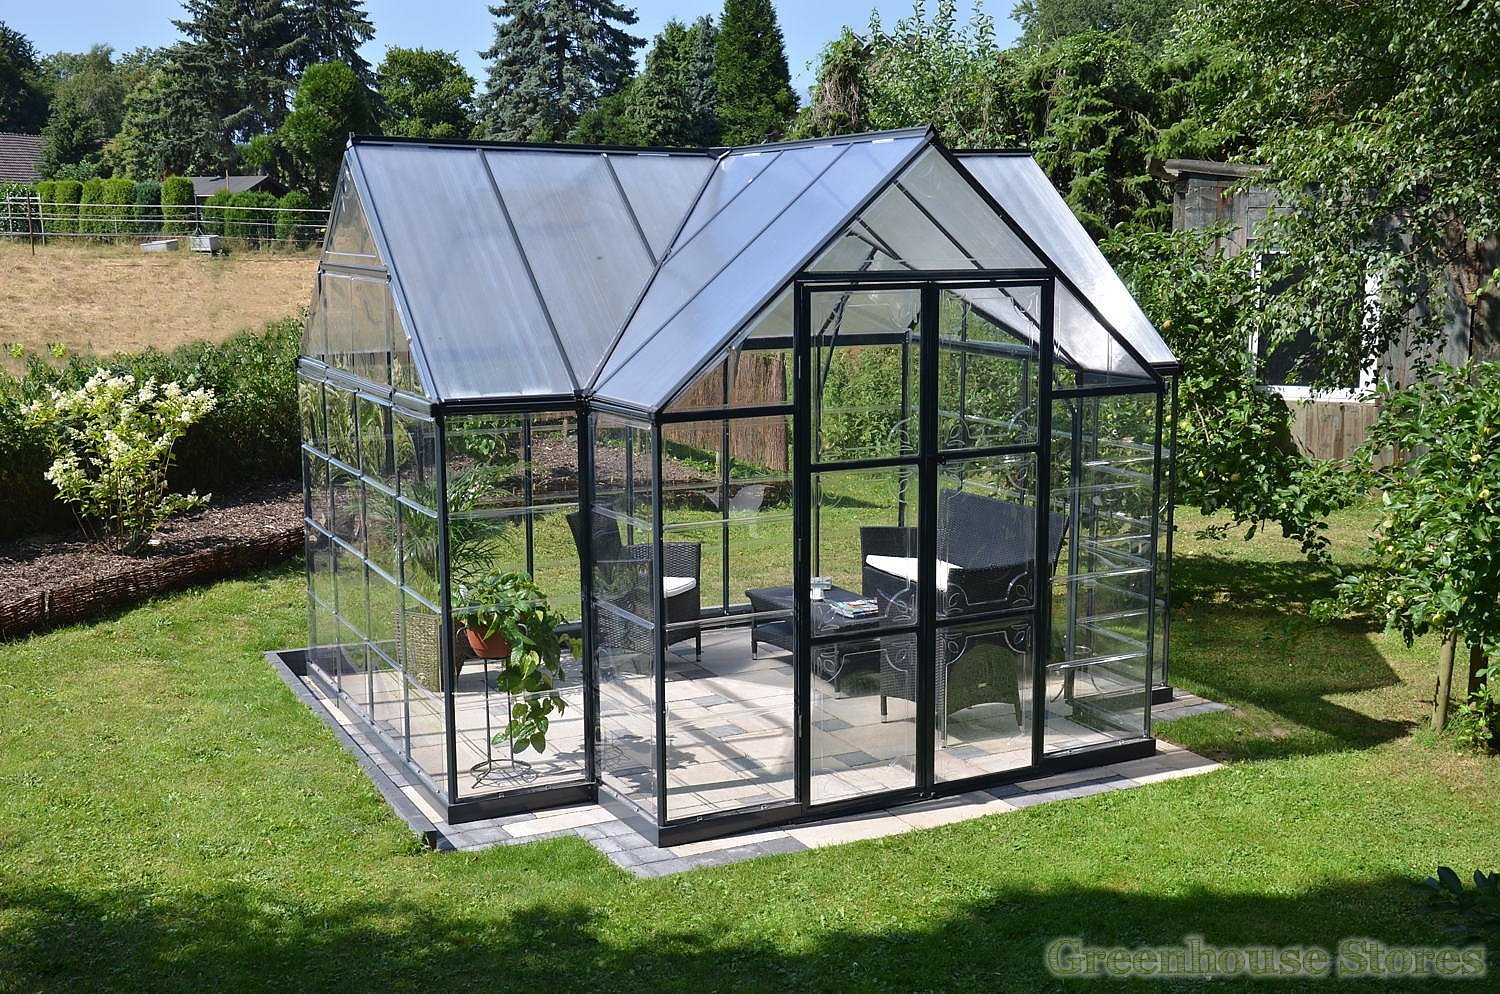 palram victory orangery polycarbonate greenhouse stores. Black Bedroom Furniture Sets. Home Design Ideas